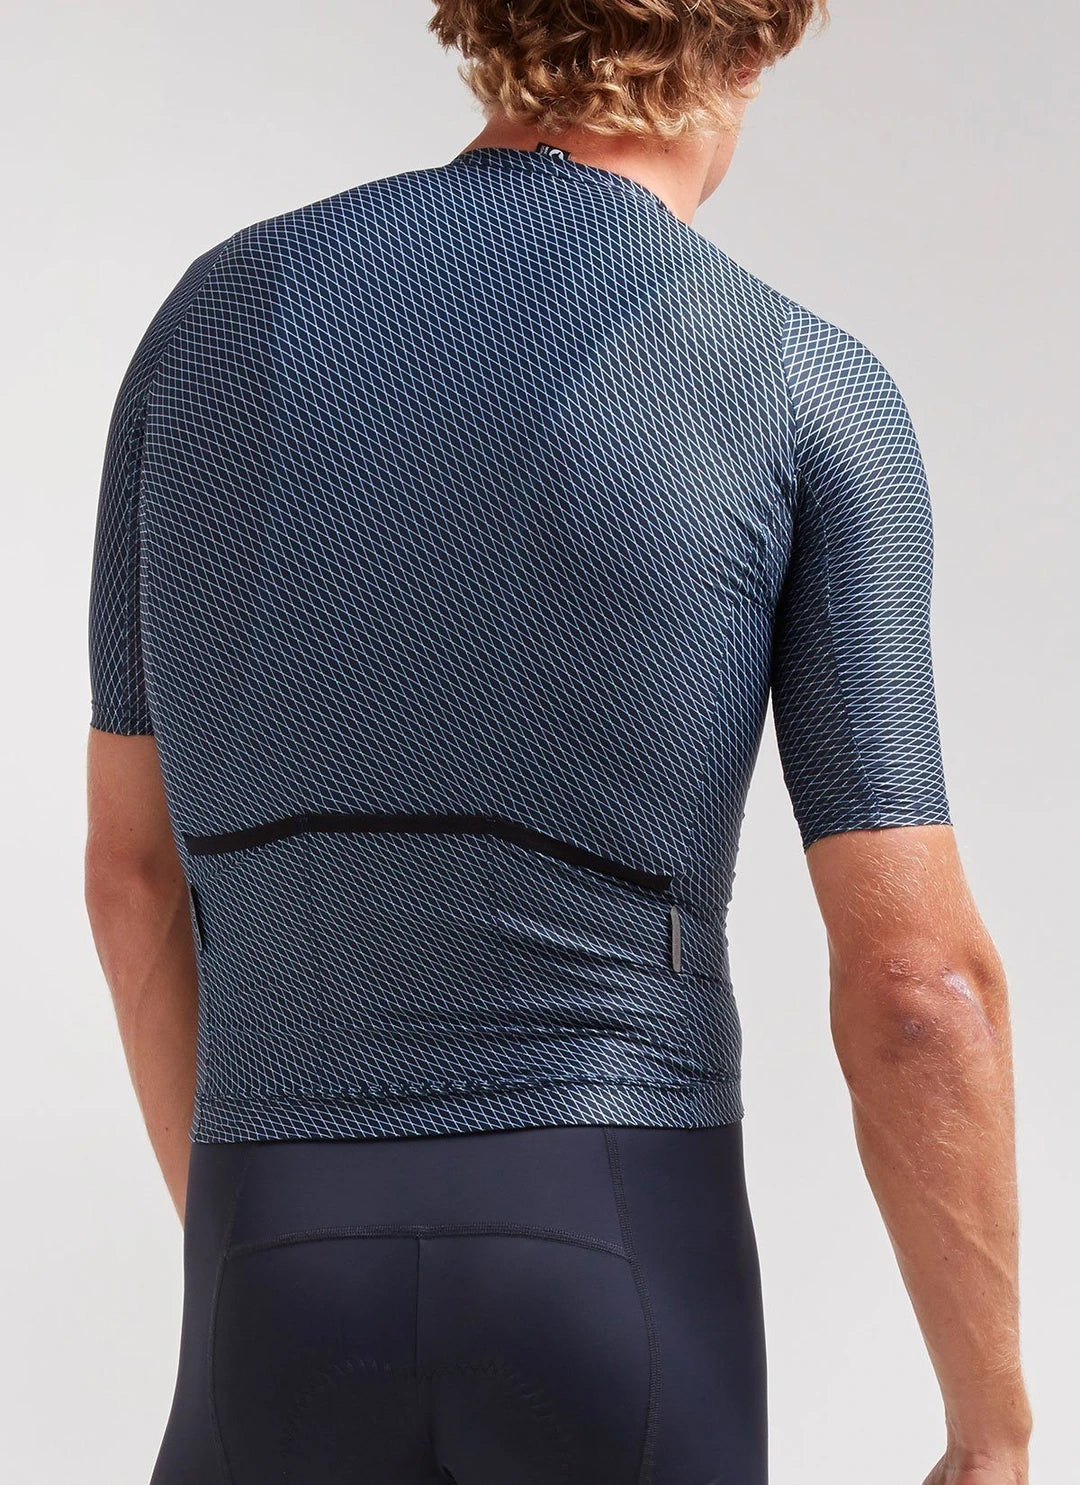 Black Sheep Cycling Men's Essentials TEAM Jersey - Navy Hatch | CYCLISM